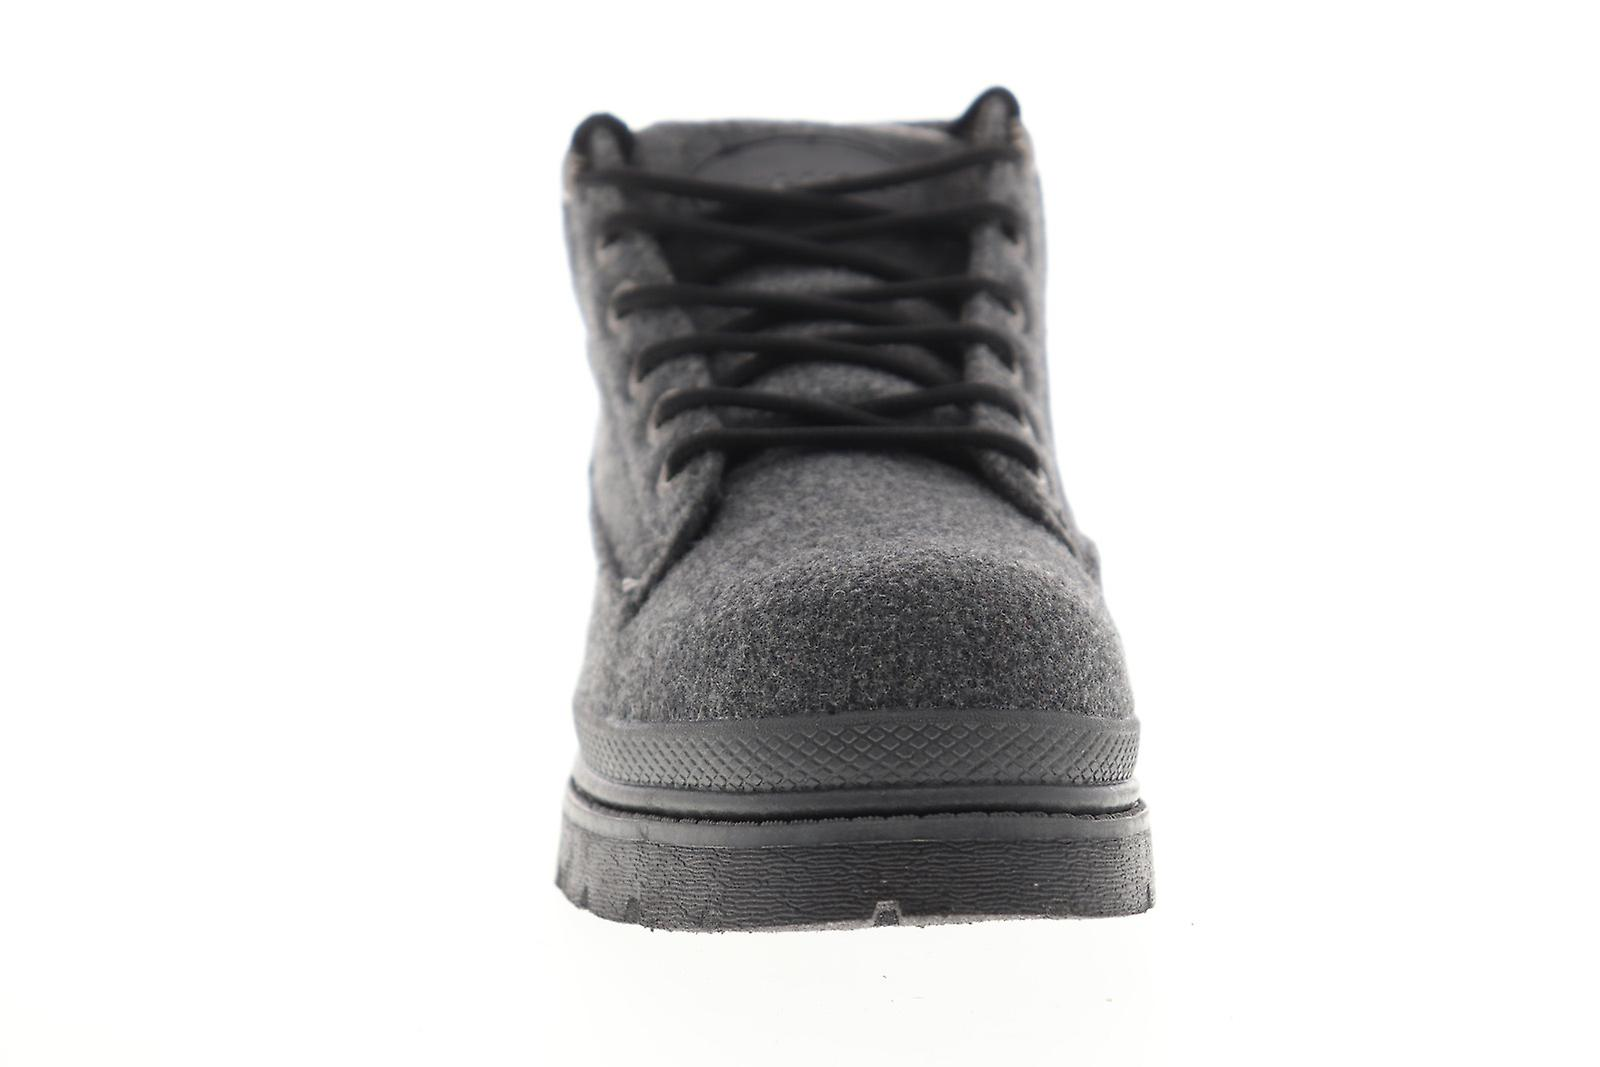 Lugz Drifter Peacoat Mens Gray Suede Lace Up Casual Dress Boots